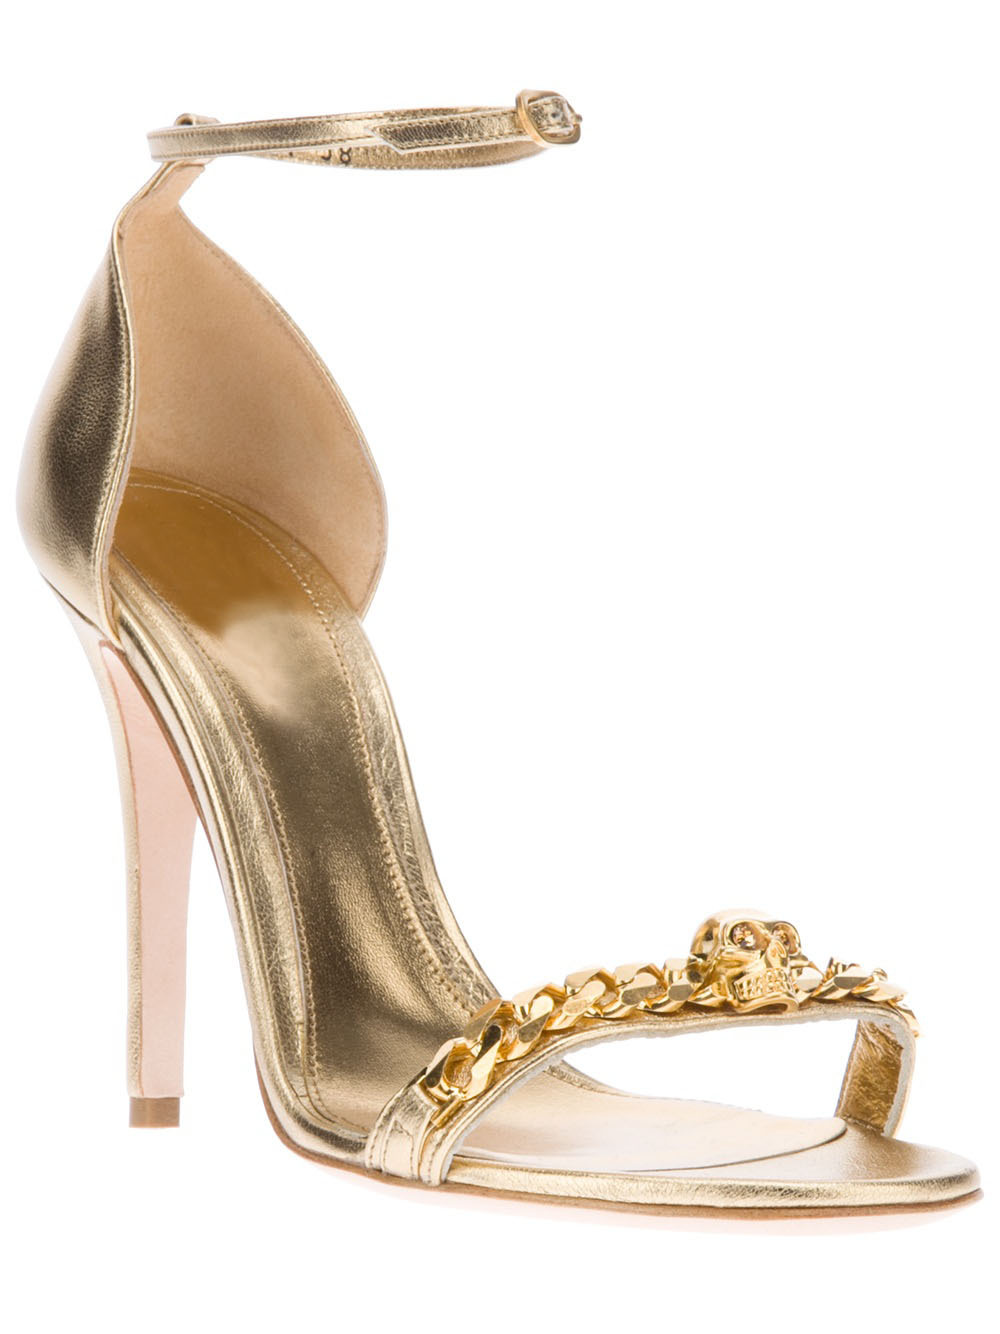 Compare Prices on Cheap Gold Shoes- Online Shopping/Buy Low Price ...